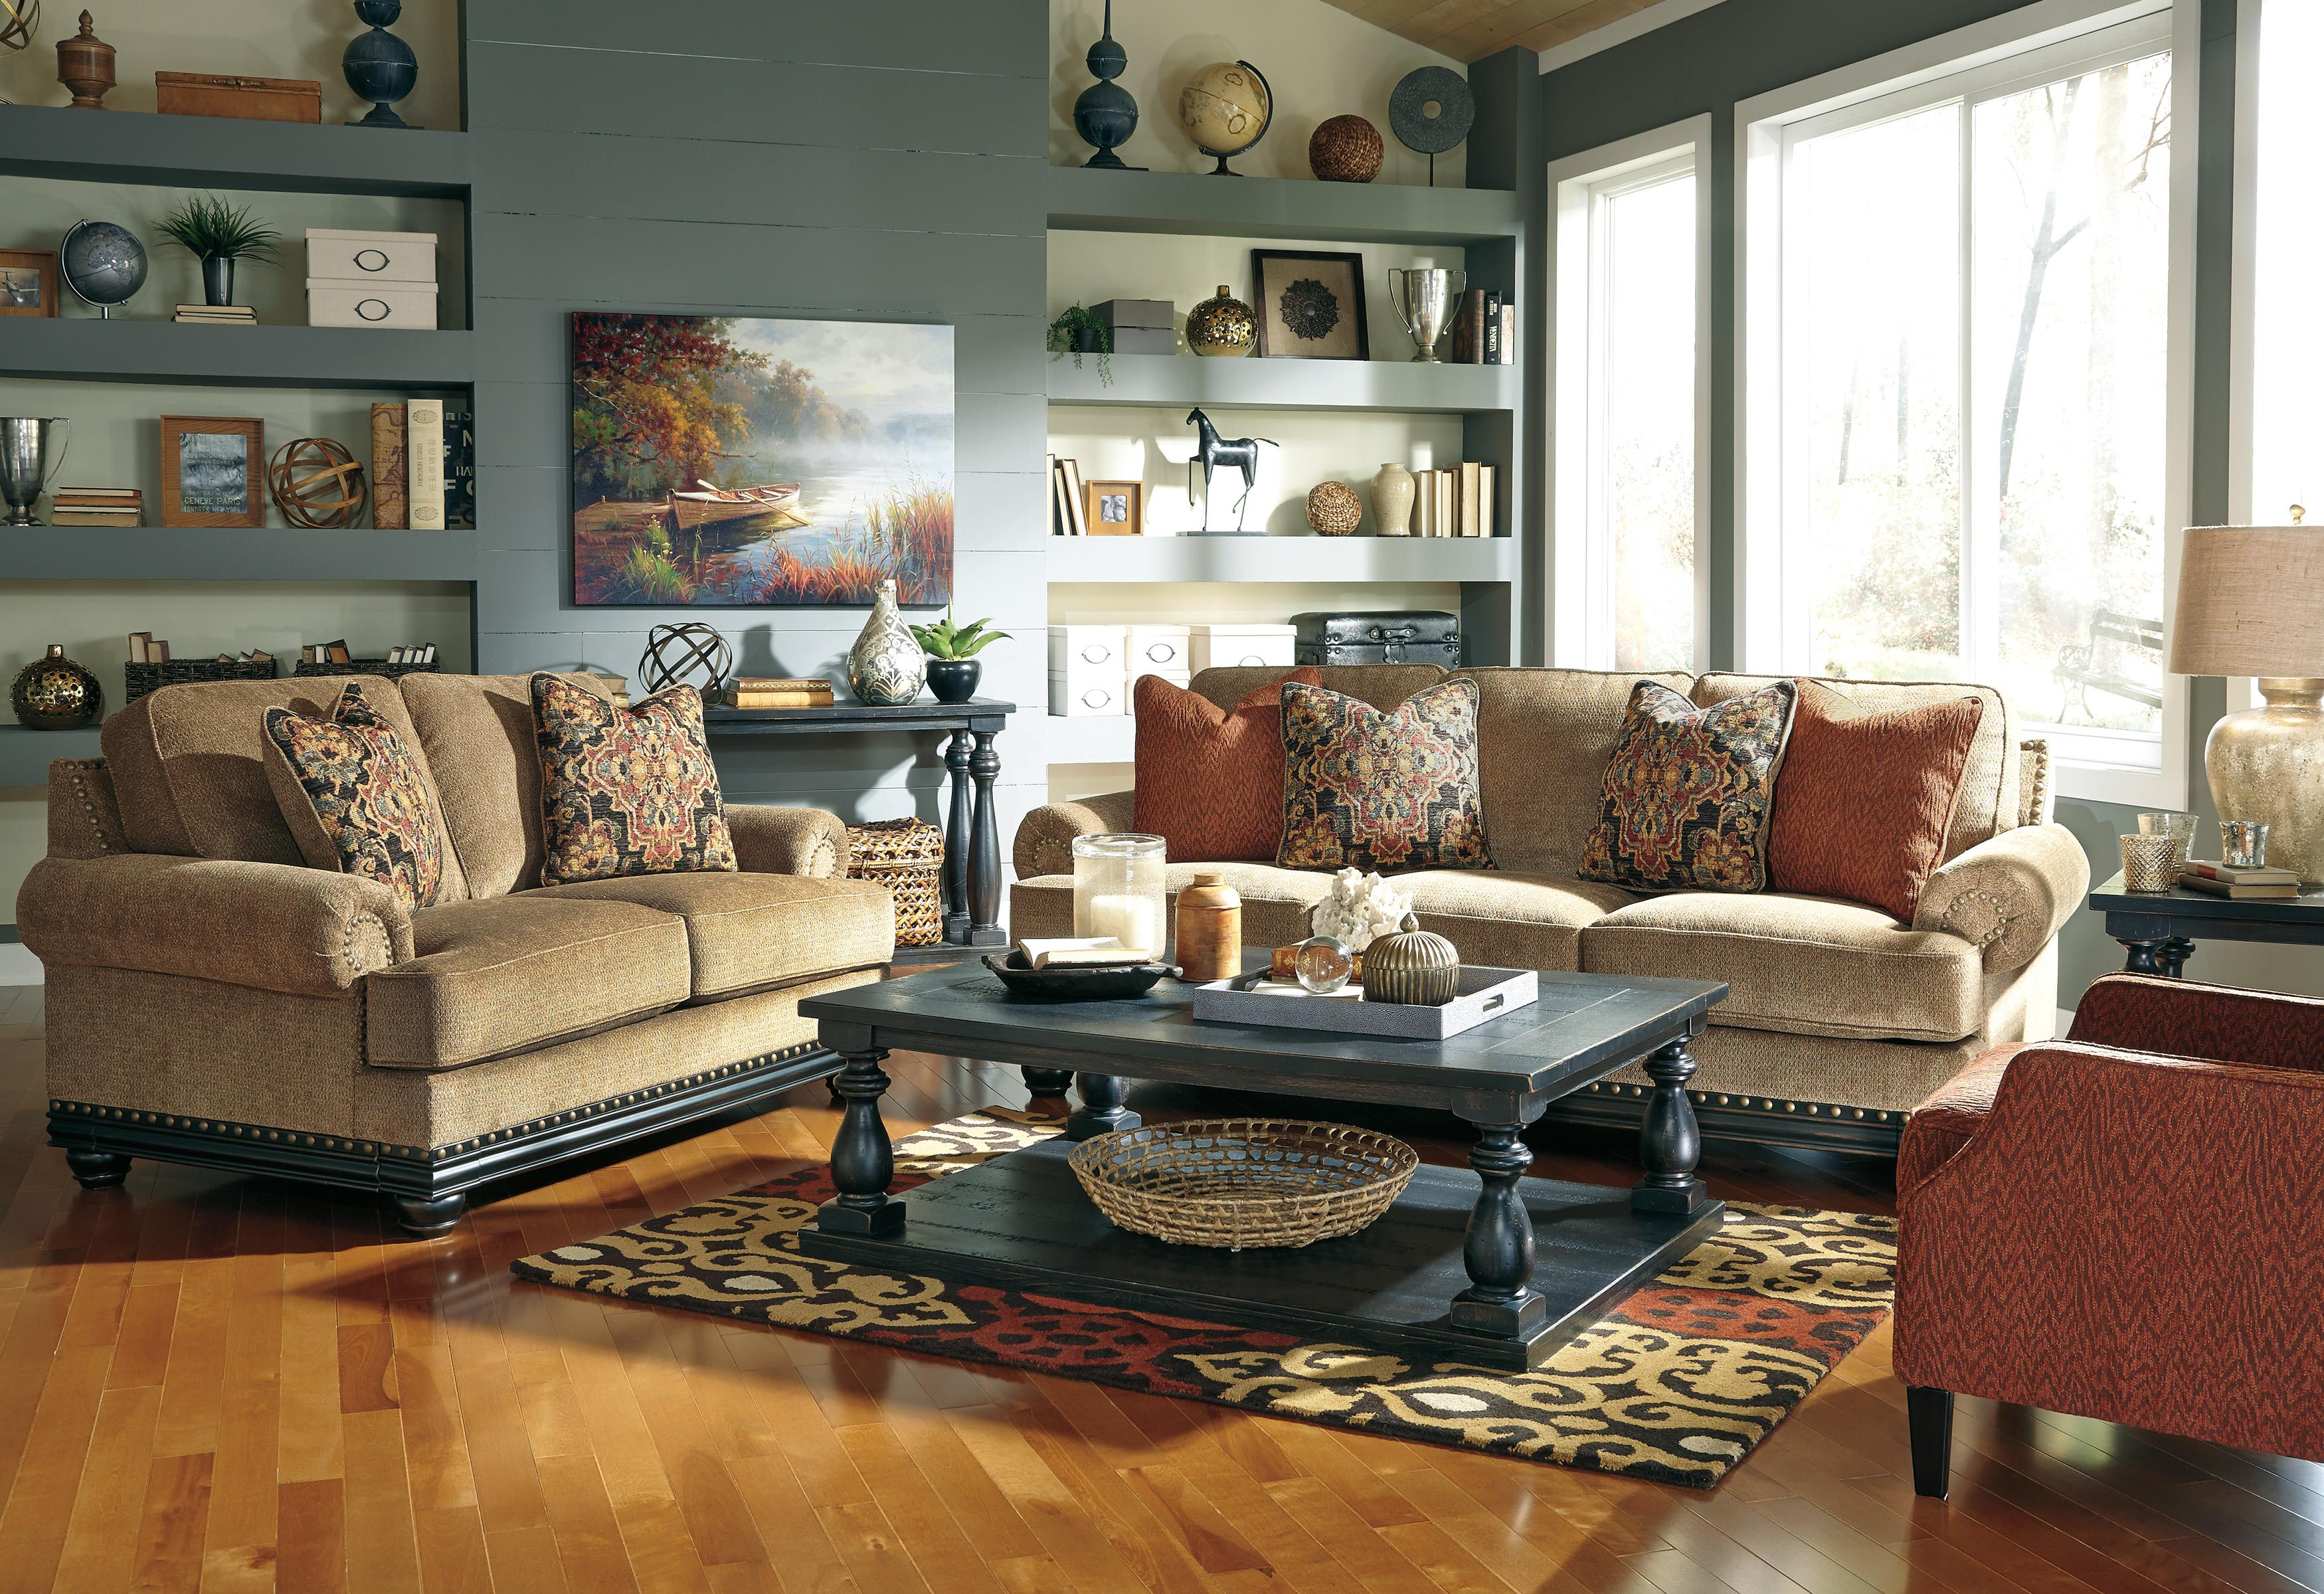 Signature Design by Ashley Elnora Stationary Living Room Group - Item Number: 93702 Living Room Group 3